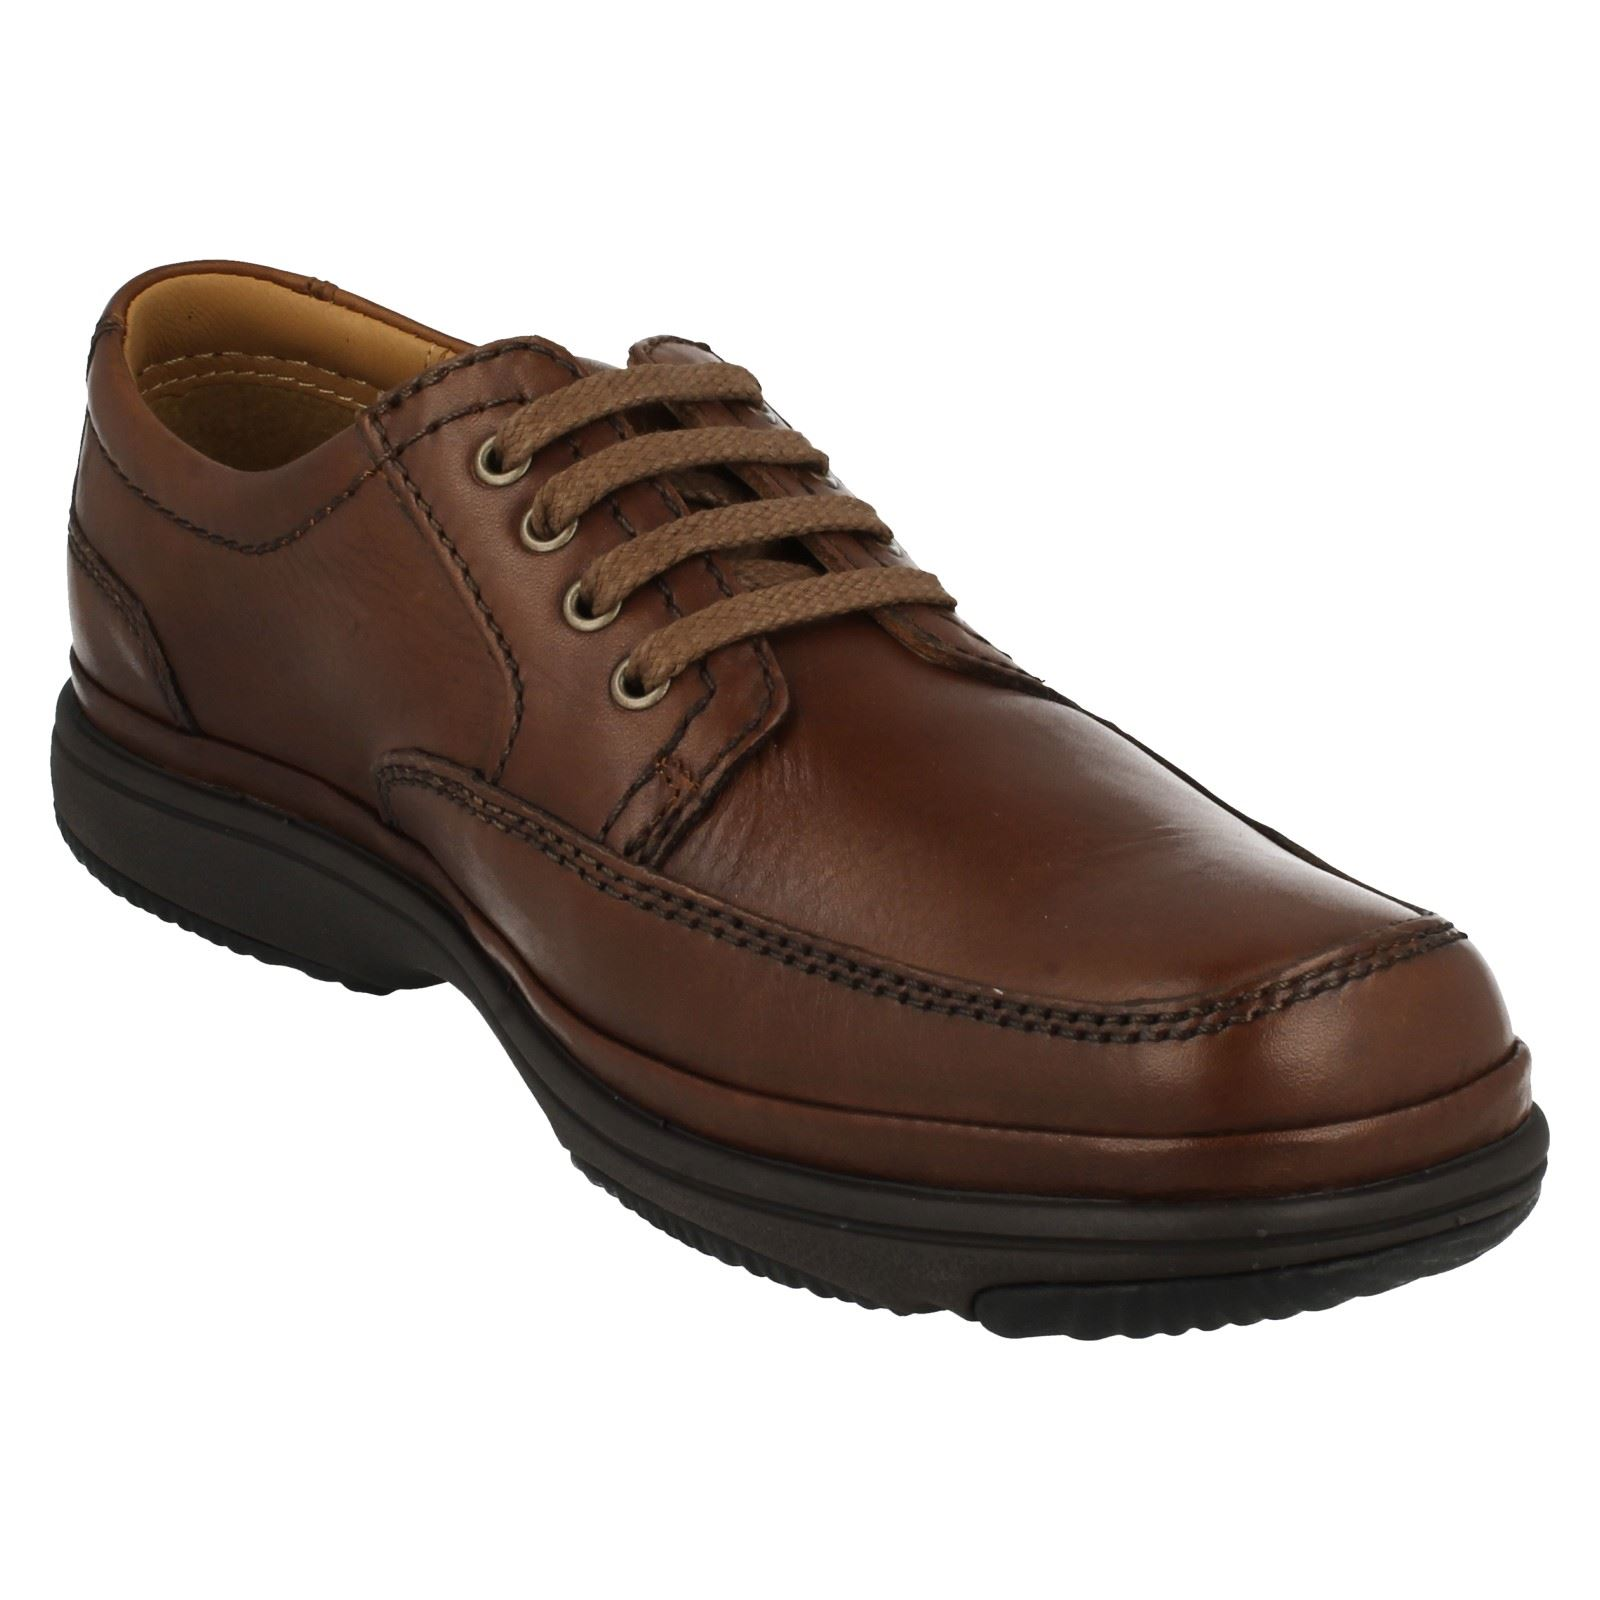 Herren Clarks Flexlight Wide Fitting Fitting Fitting Lace Up Schuhe, Swift Mile 8ccb58